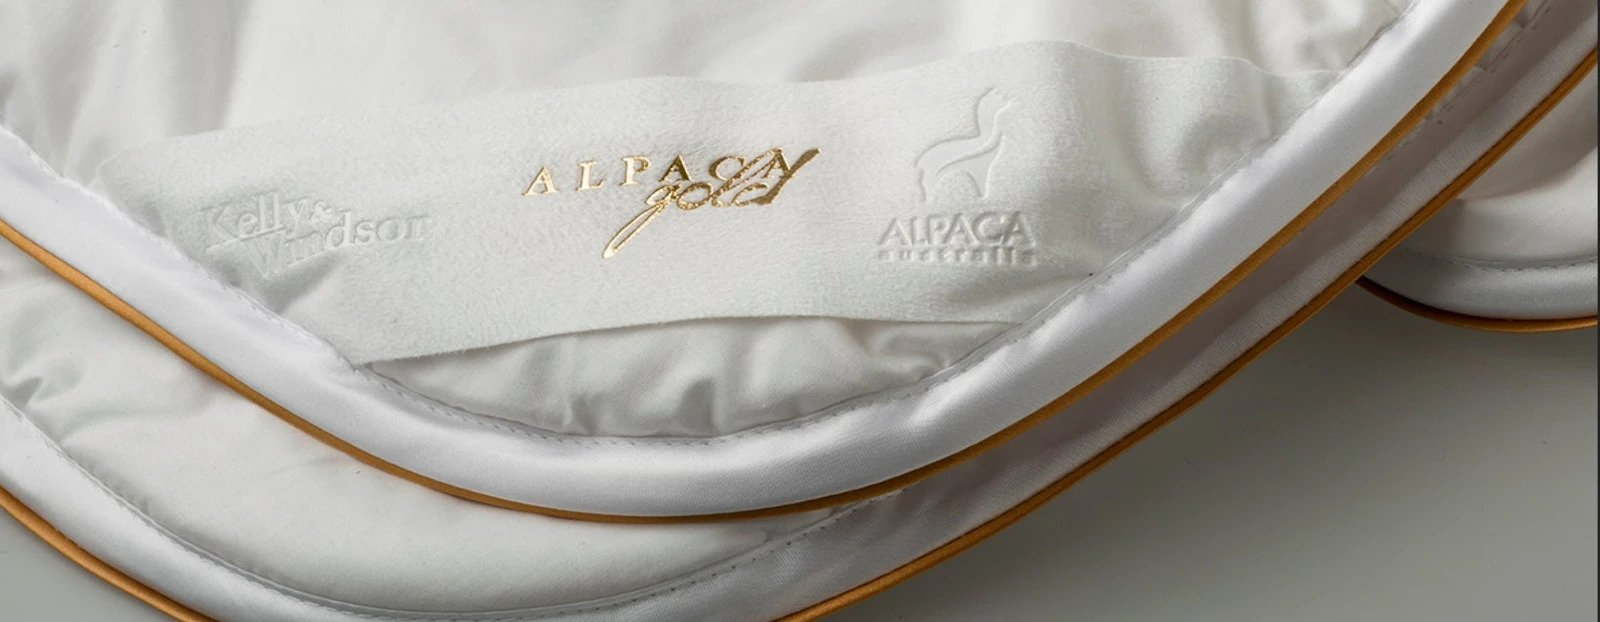 alpaca gold  quilts are  pure luxury